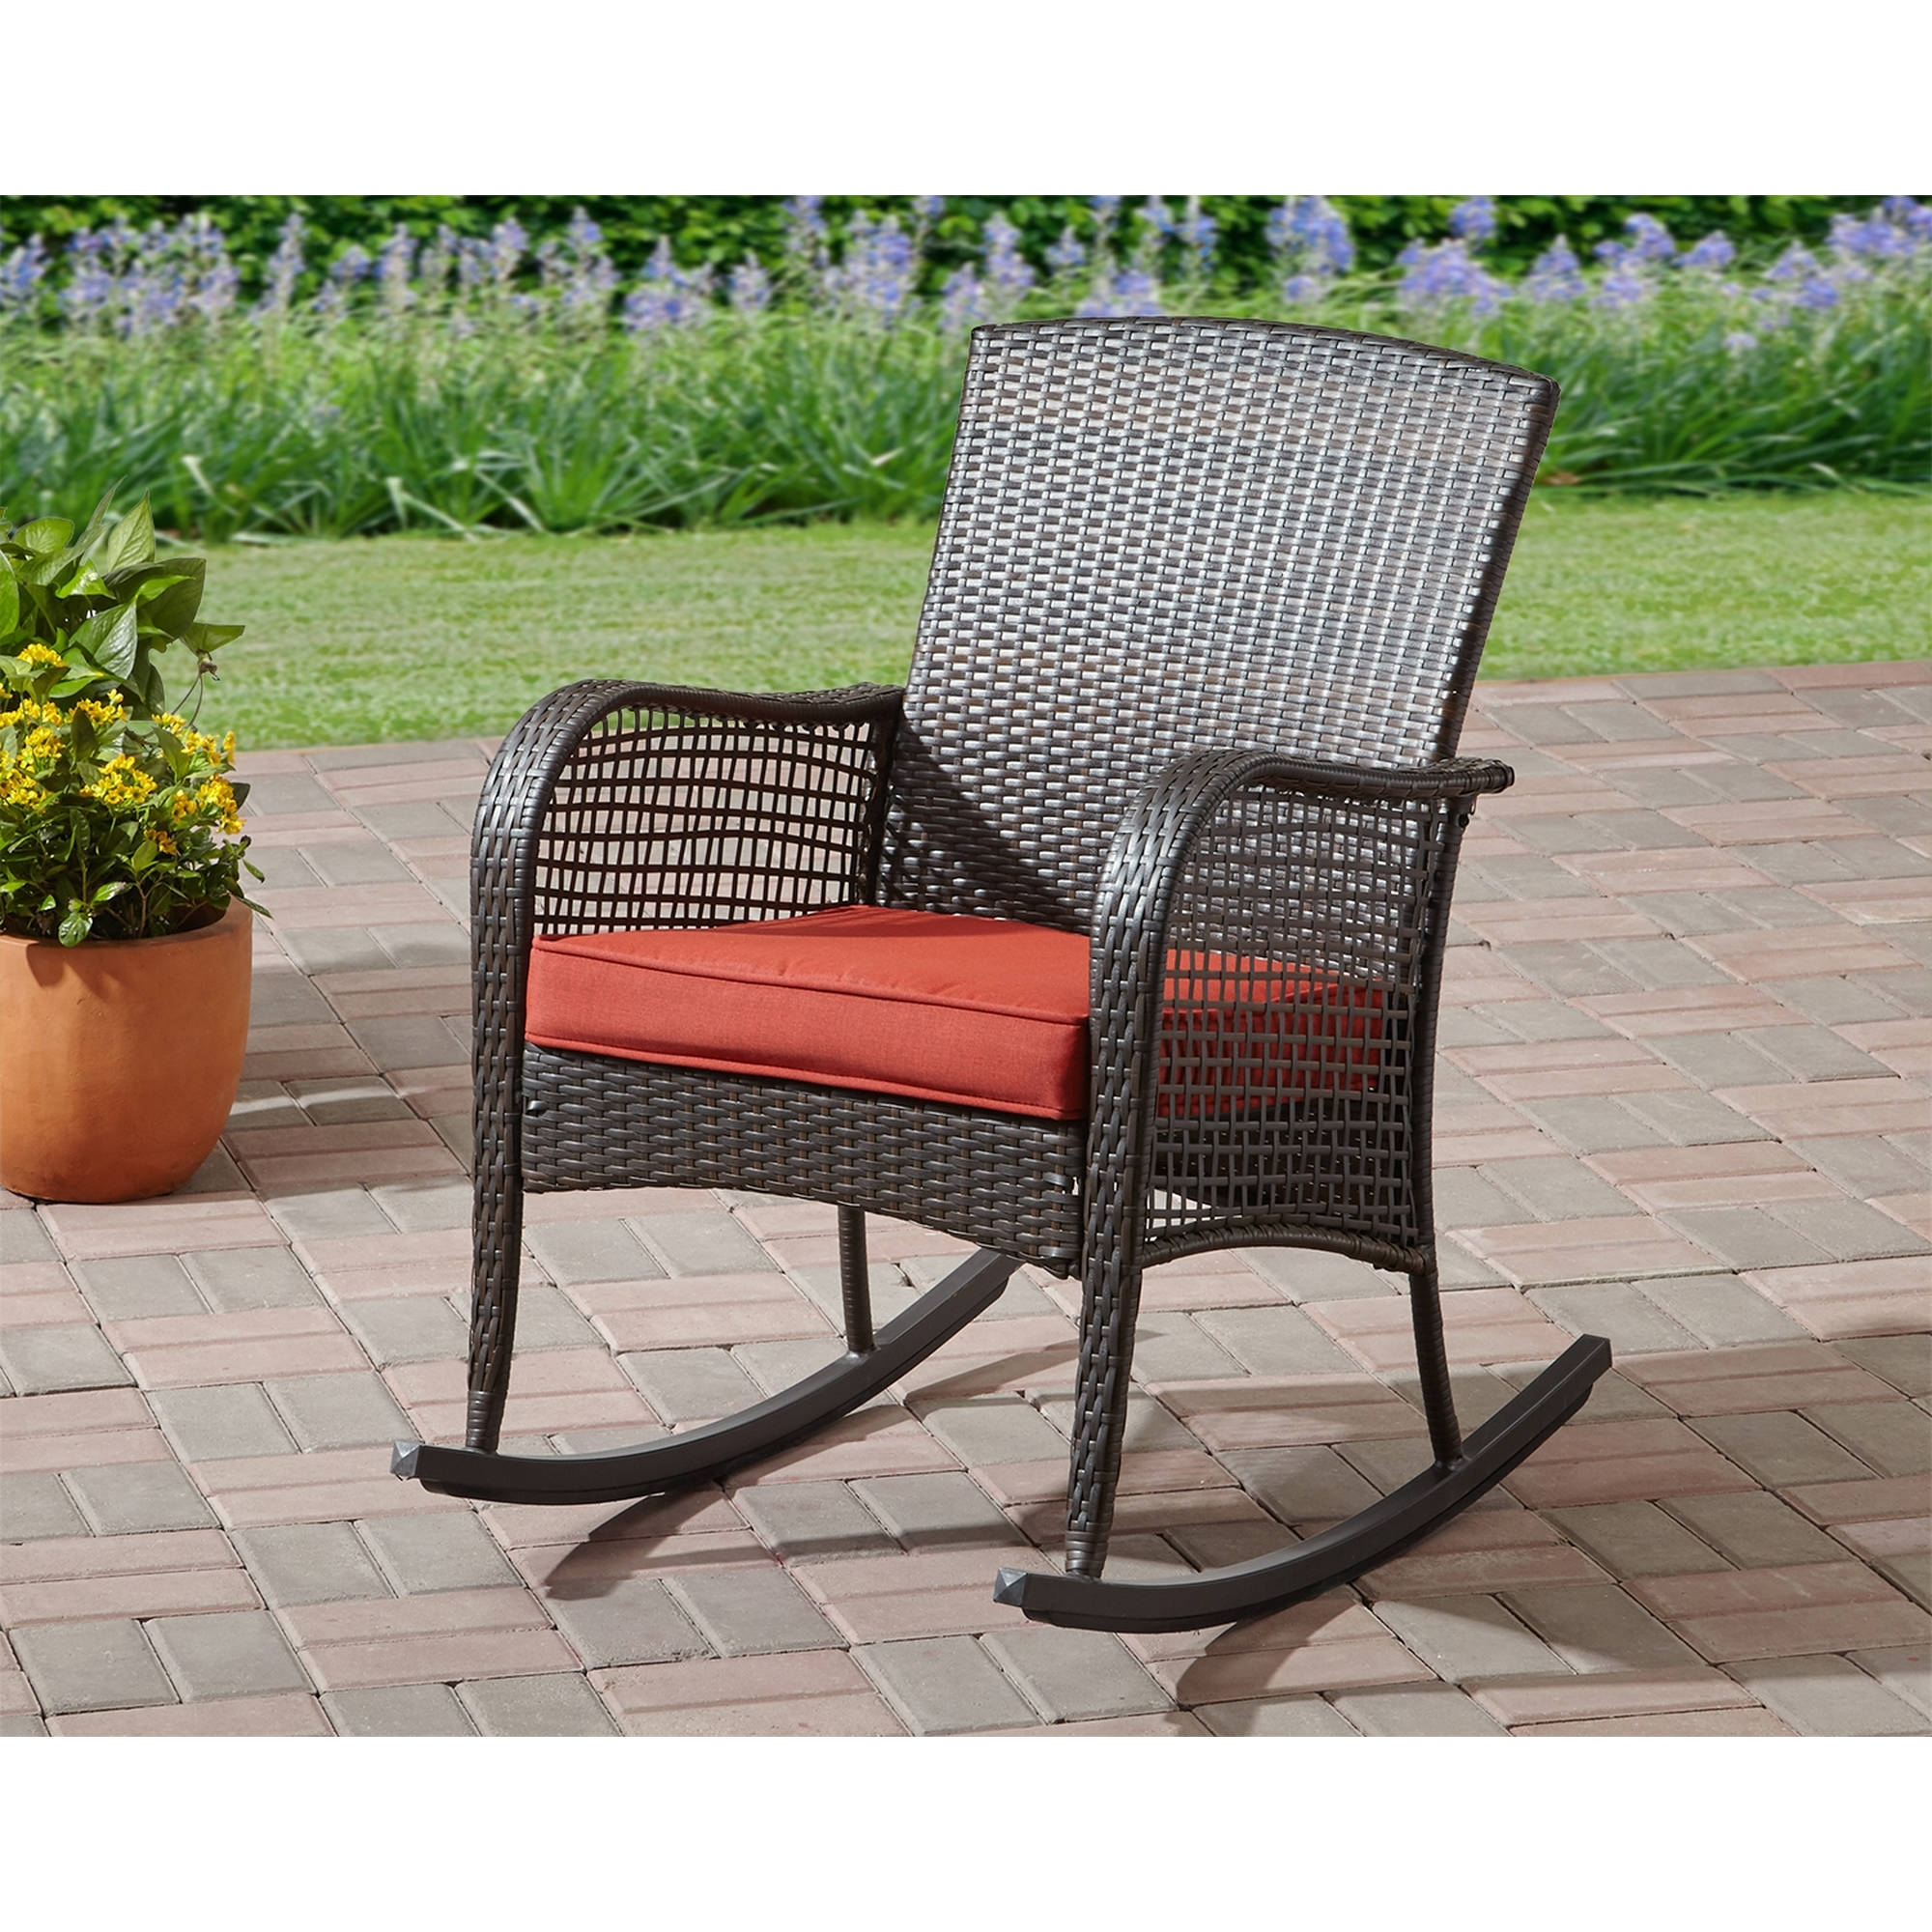 Mainstays Cambridge Park Wicker Outdoor Rocking Chair – Walmart Intended For Best And Newest Wicker Rocking Chairs For Outdoors (View 3 of 15)